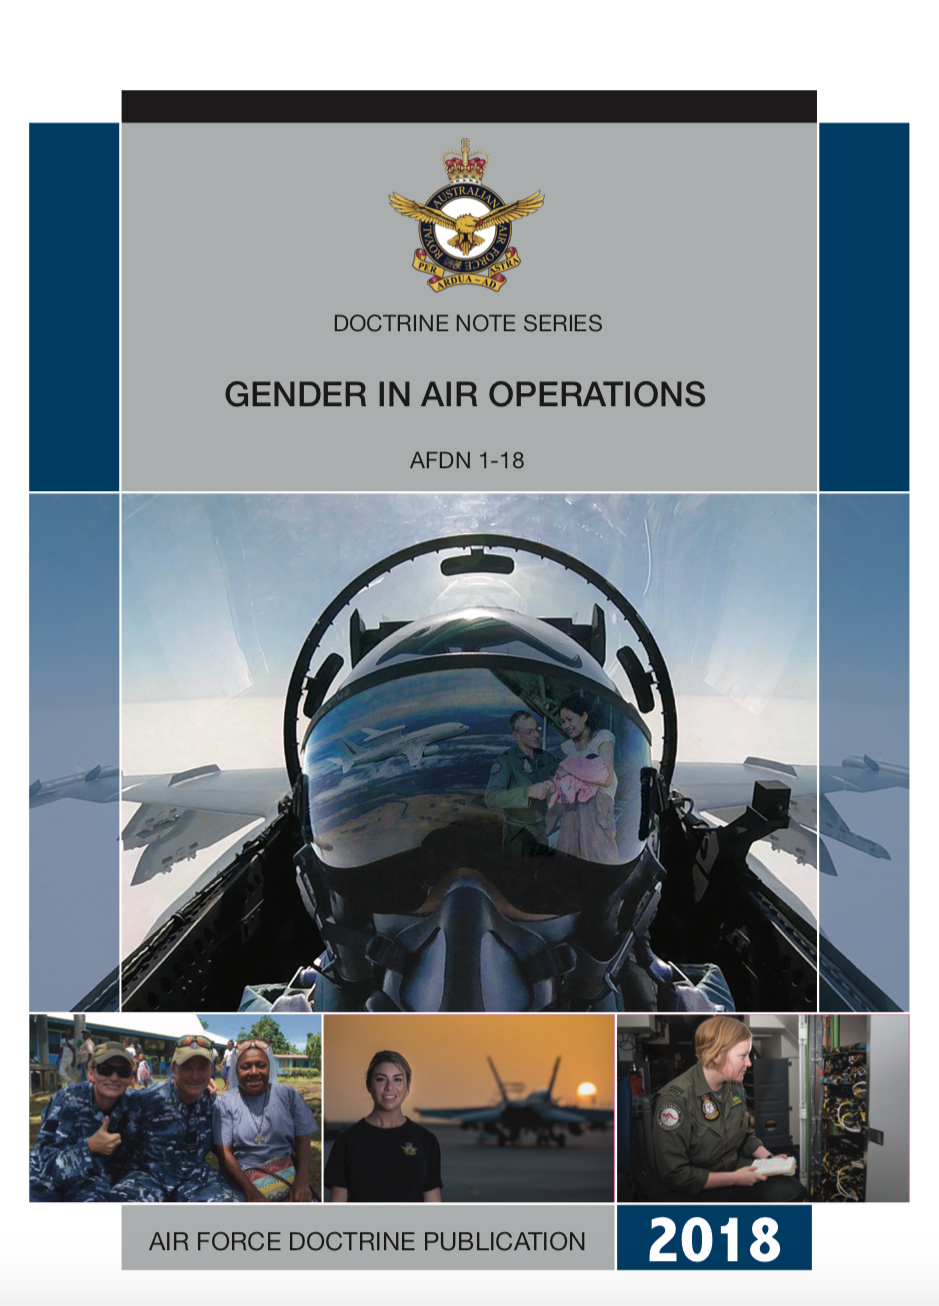 Click to access the official Australia Defence Force (ADF), Air Force Doctrine Publication, Gender in Air Operations, ADFN 1-18